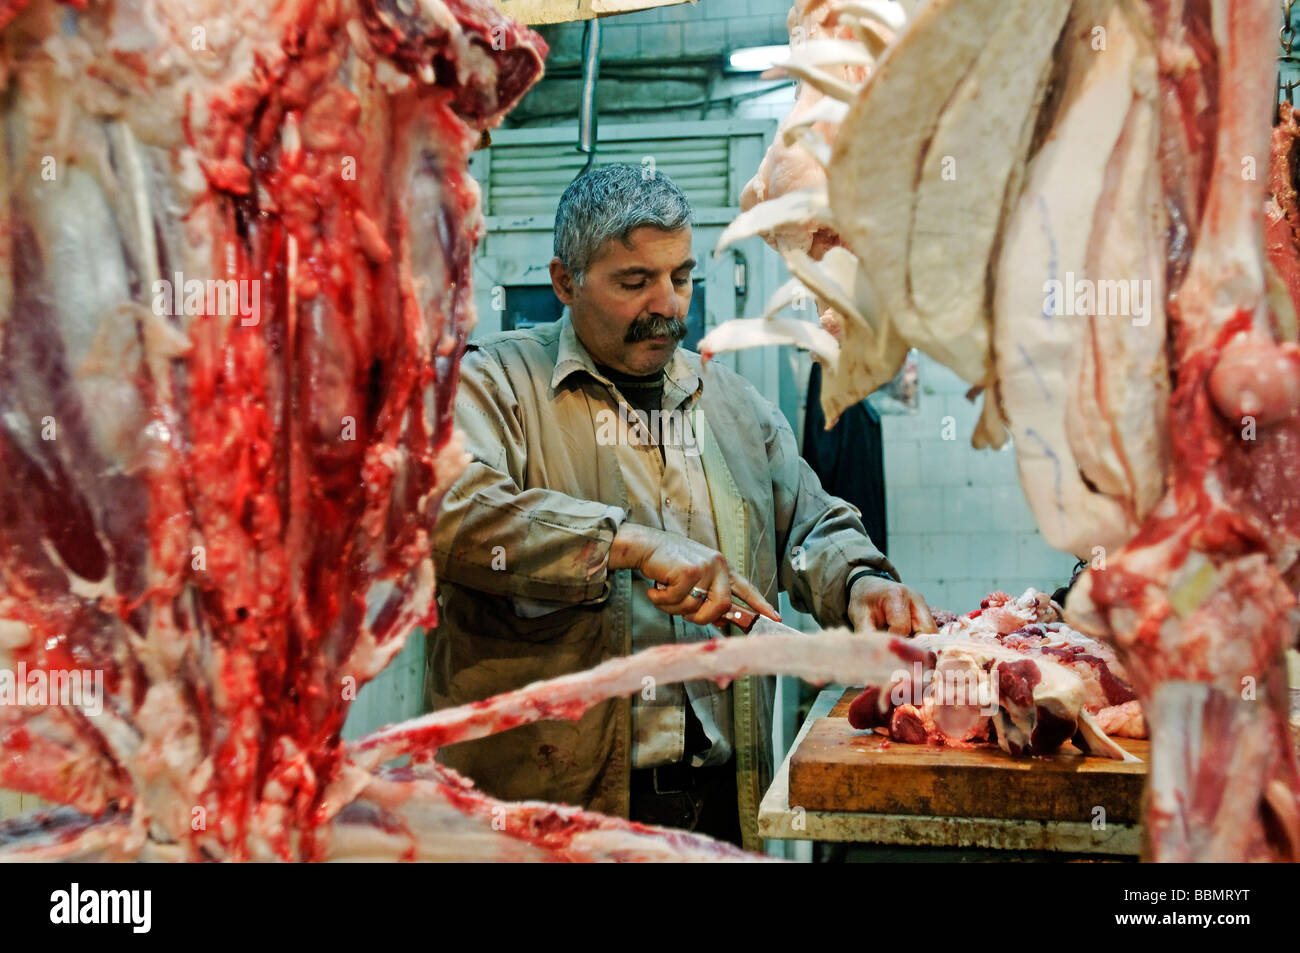 Butcher in the bazaar of Aleppo, Syria, Middle East, Asia - Stock Image